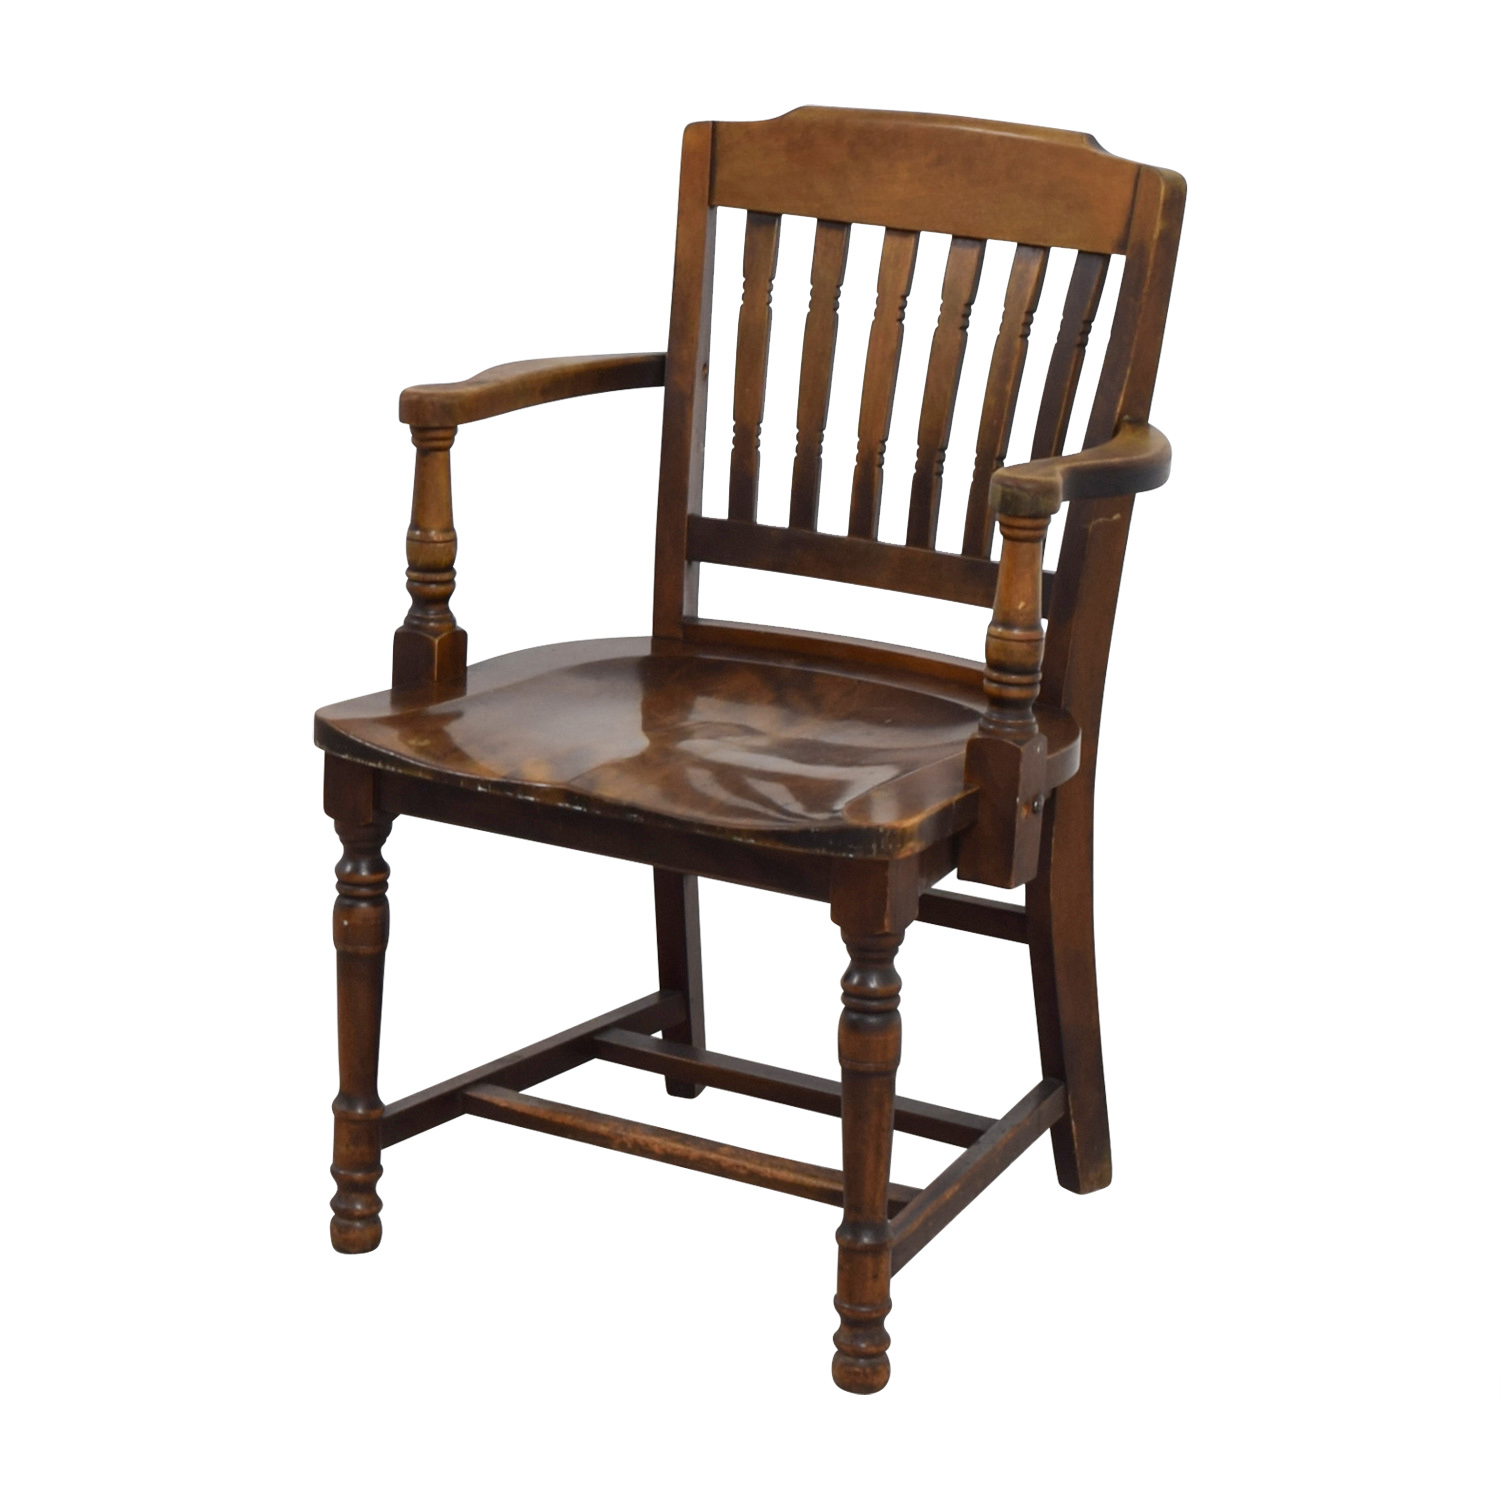 shop Antique Wood Spindel Chair online